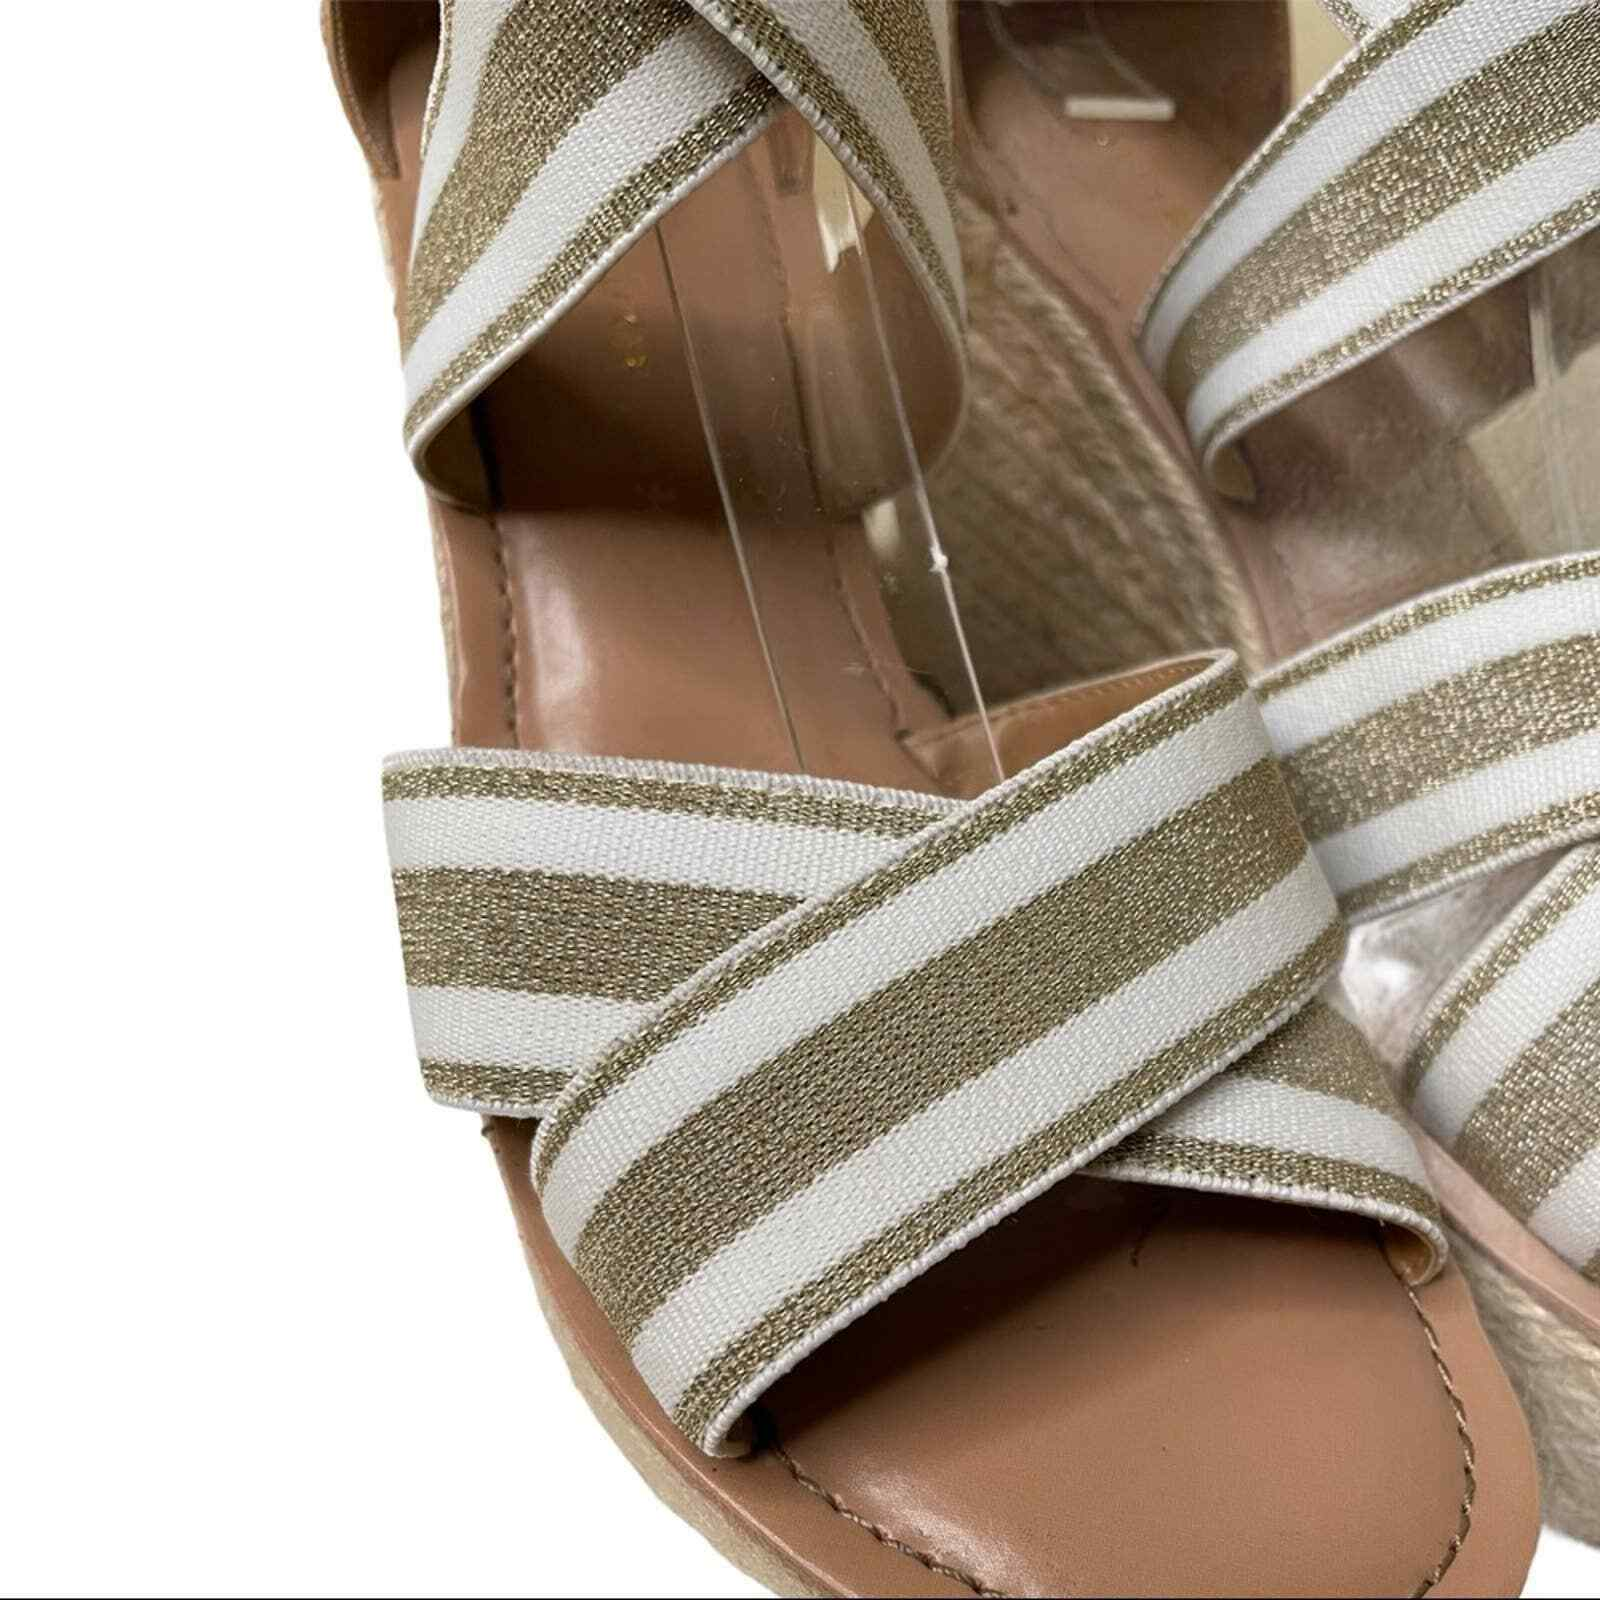 Tommy Hilfiger Theia Wedges Size 8.5 - image 5